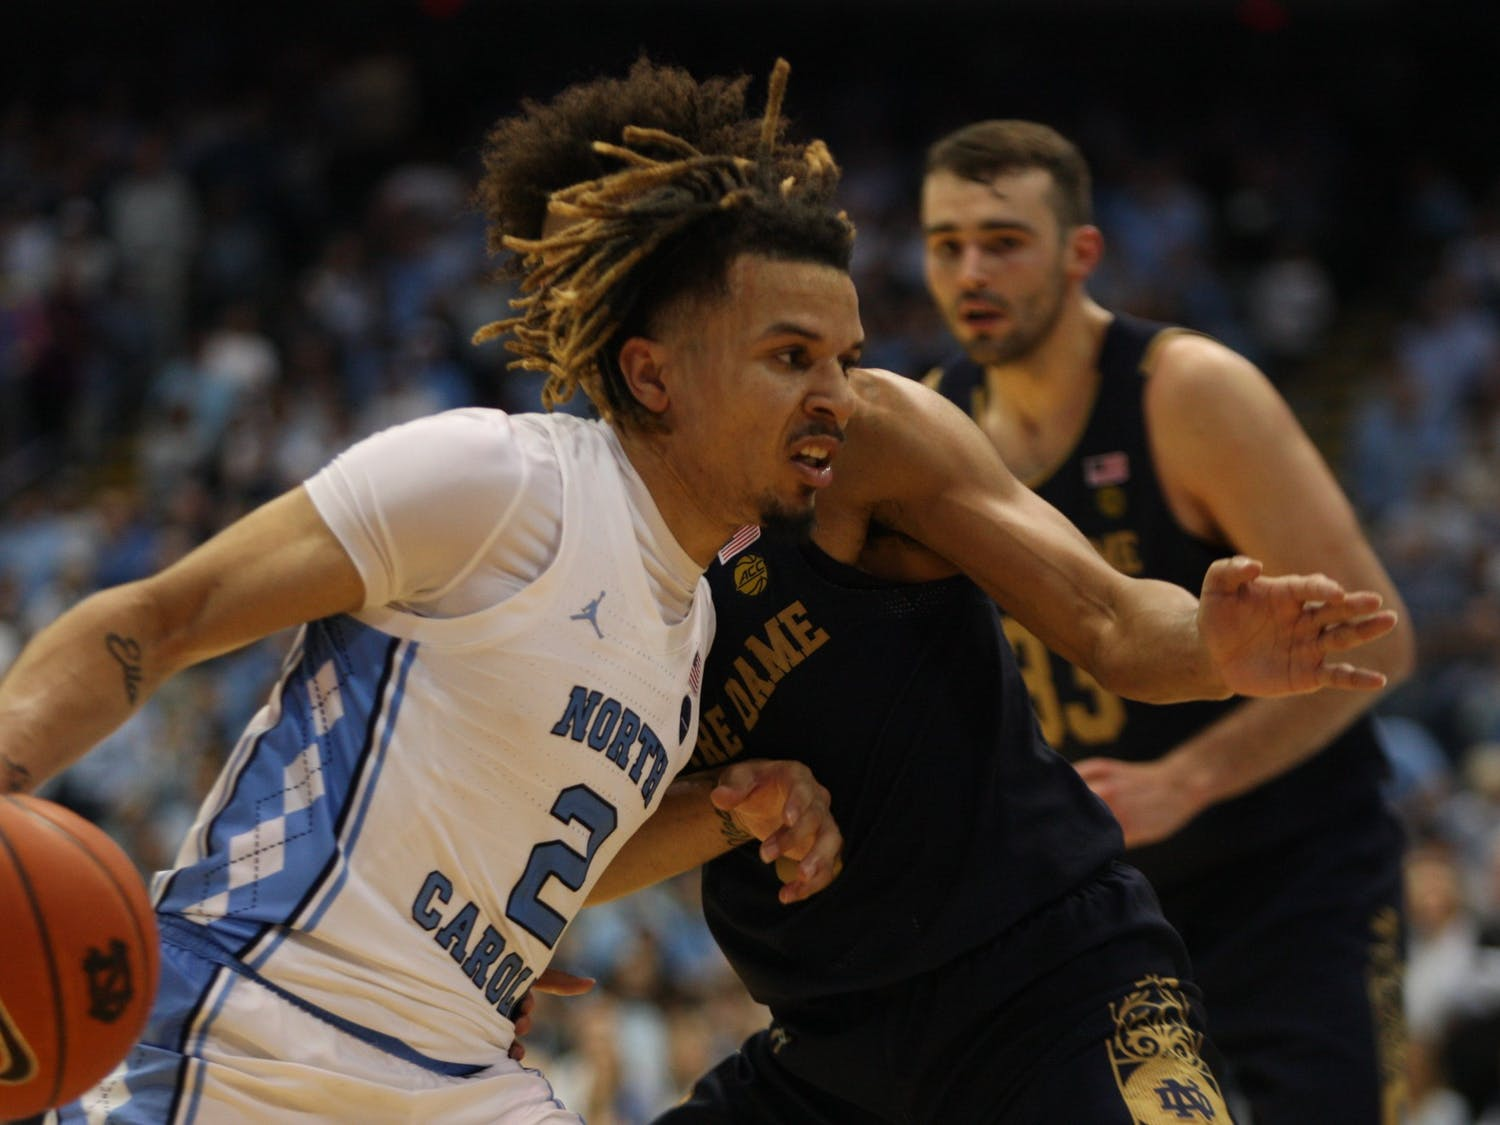 UNC guard Cole Anthony (2) drives past Notre Dame's Prentiss Hubb (3) on Nov. 6, 2019 in the Dean E. Smith Center. Anthony finished the game with 34 points and 11 rebounds. The Tar Heels beat the Fighting Irish 76-65.